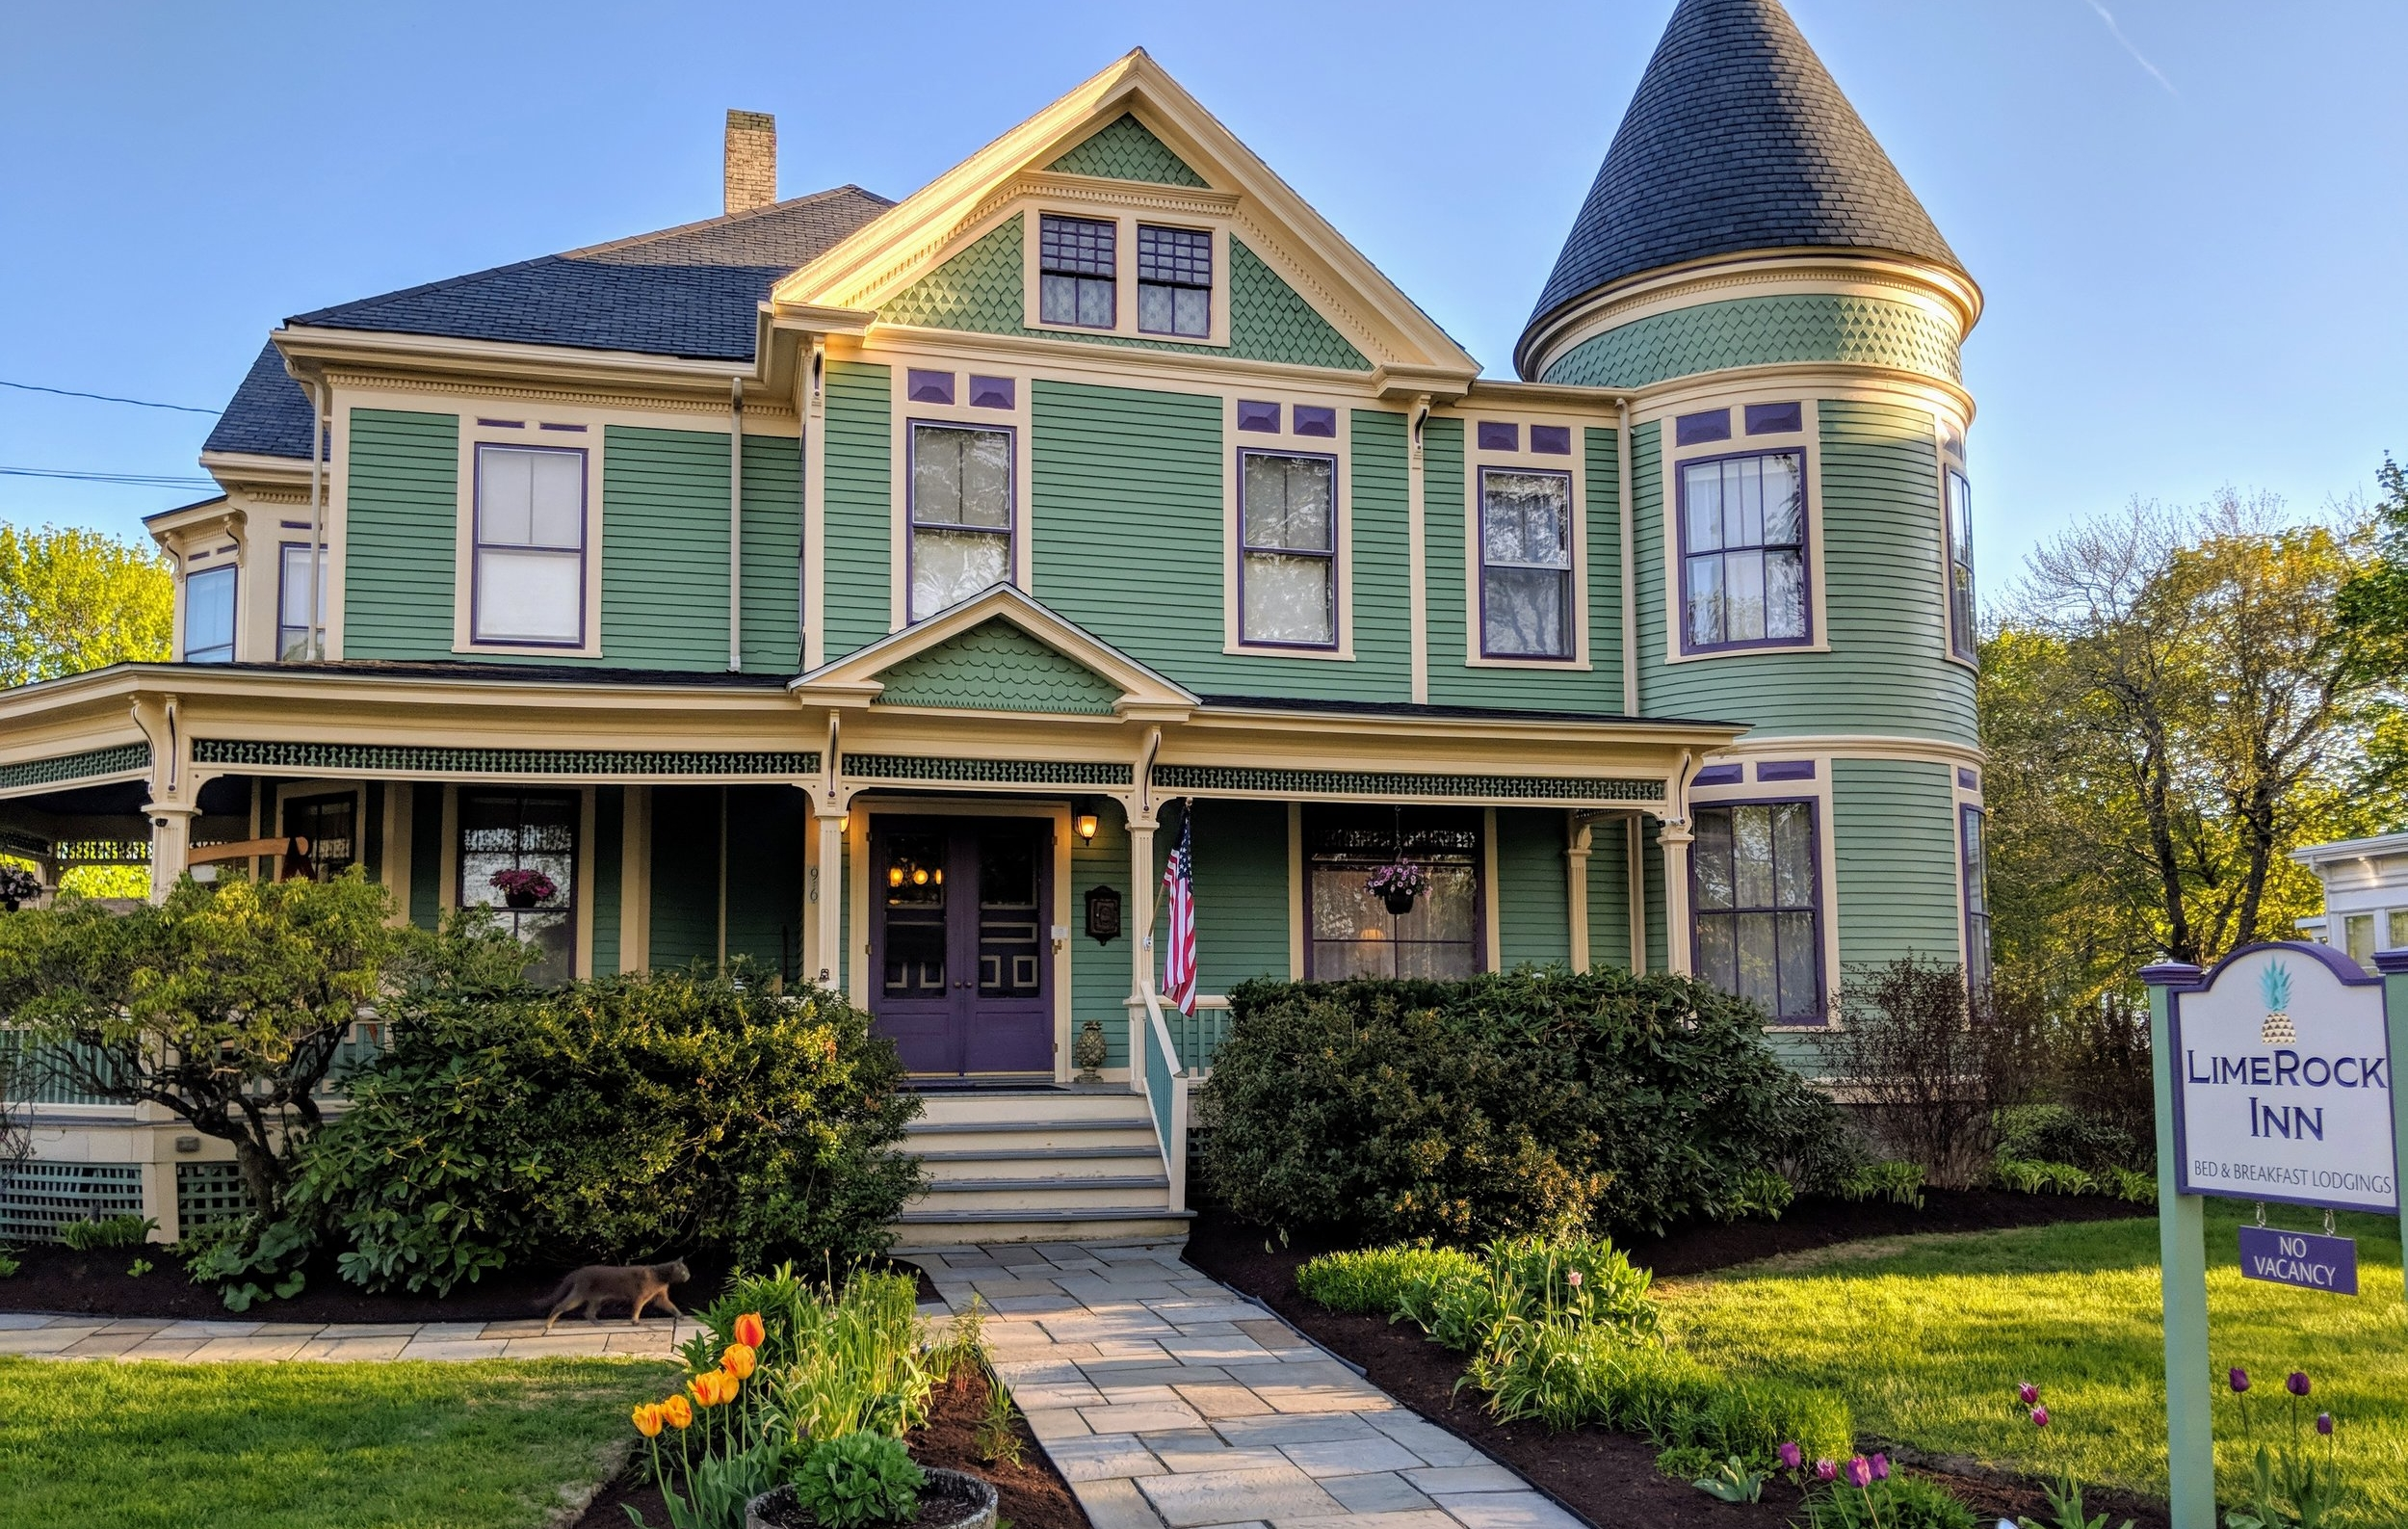 The Inn - LimeRock Inn is tucked away on a quiet street in Rockland's Historic District yet steps away from downtown for a visit to world-class museums, fine dining, Main Street shopping, and what Down East magazine referred to as